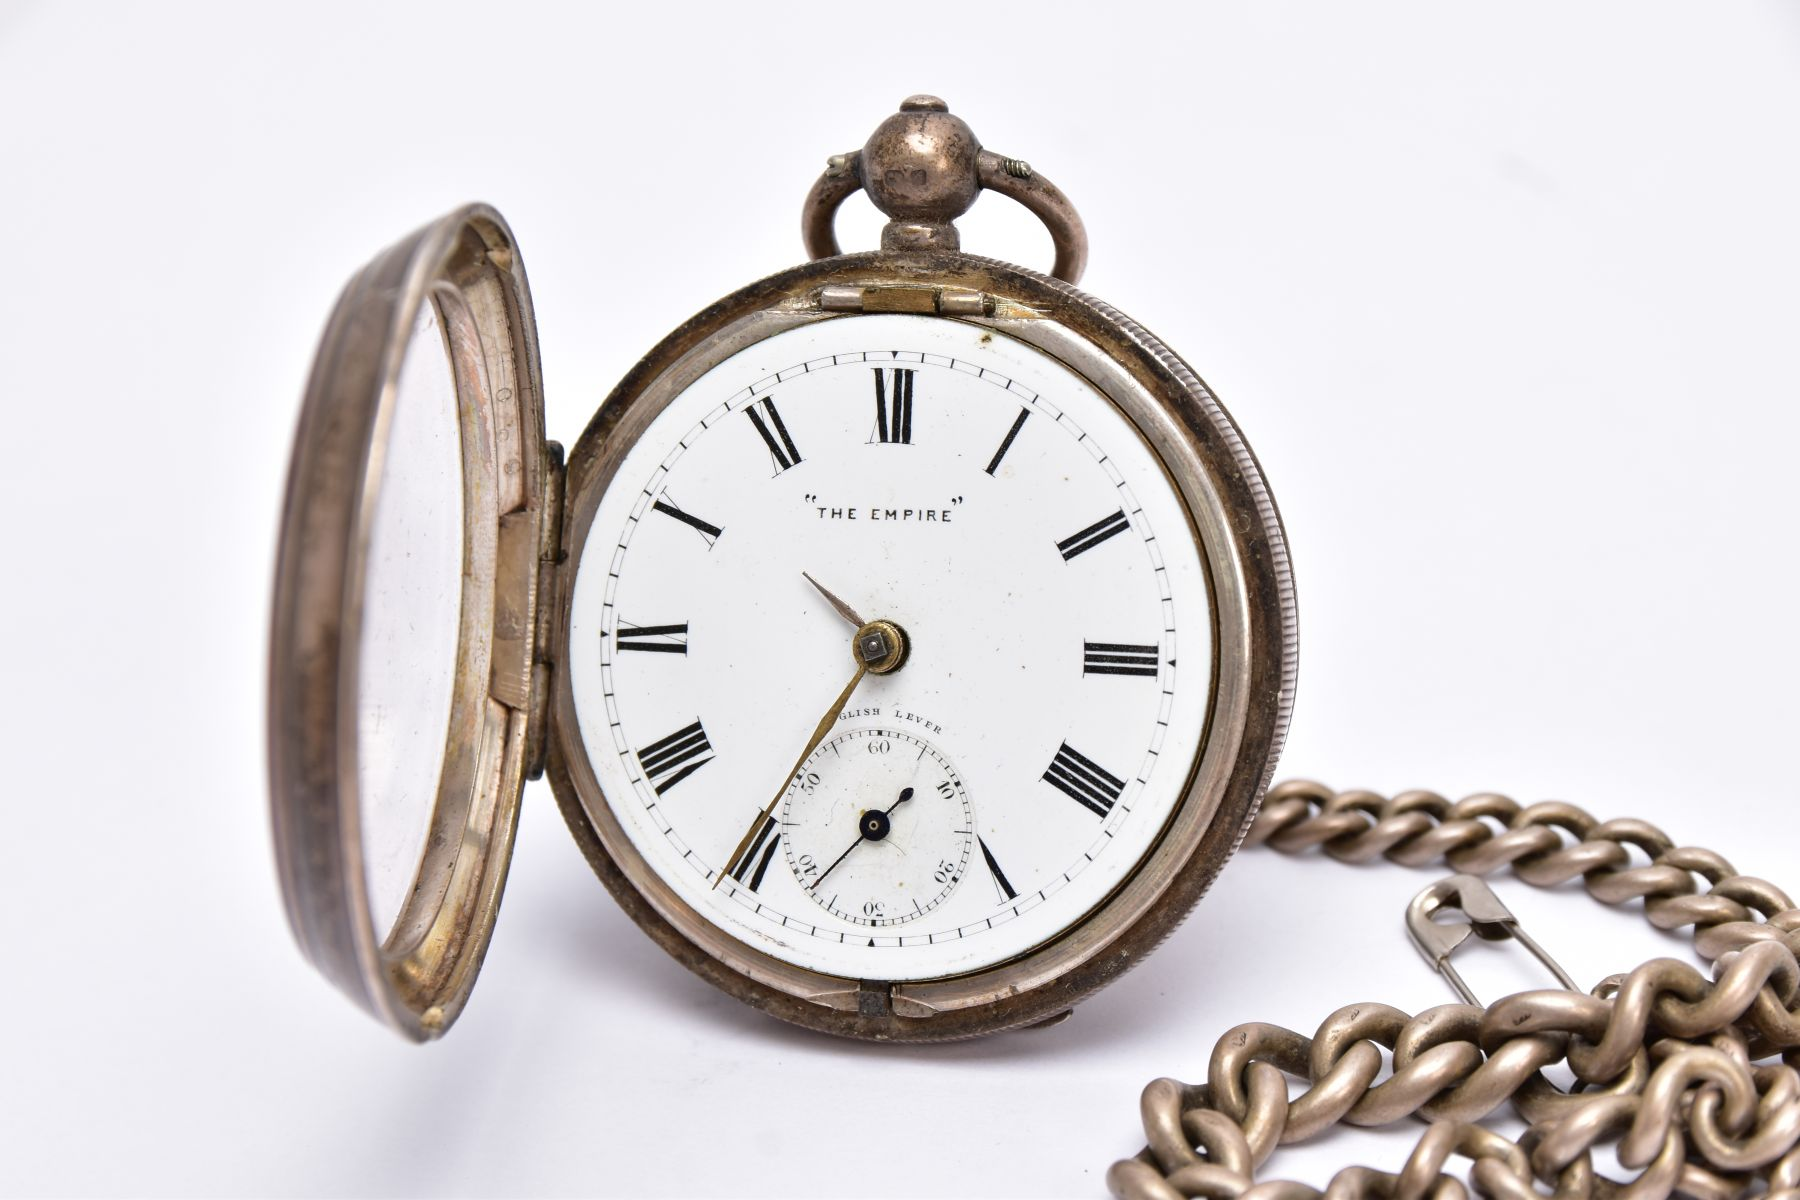 A SILVER OPEN FACED POCKET WITH ALBERT CHAIN, white dial signed 'The Empire', Roman numerals, - Image 3 of 5